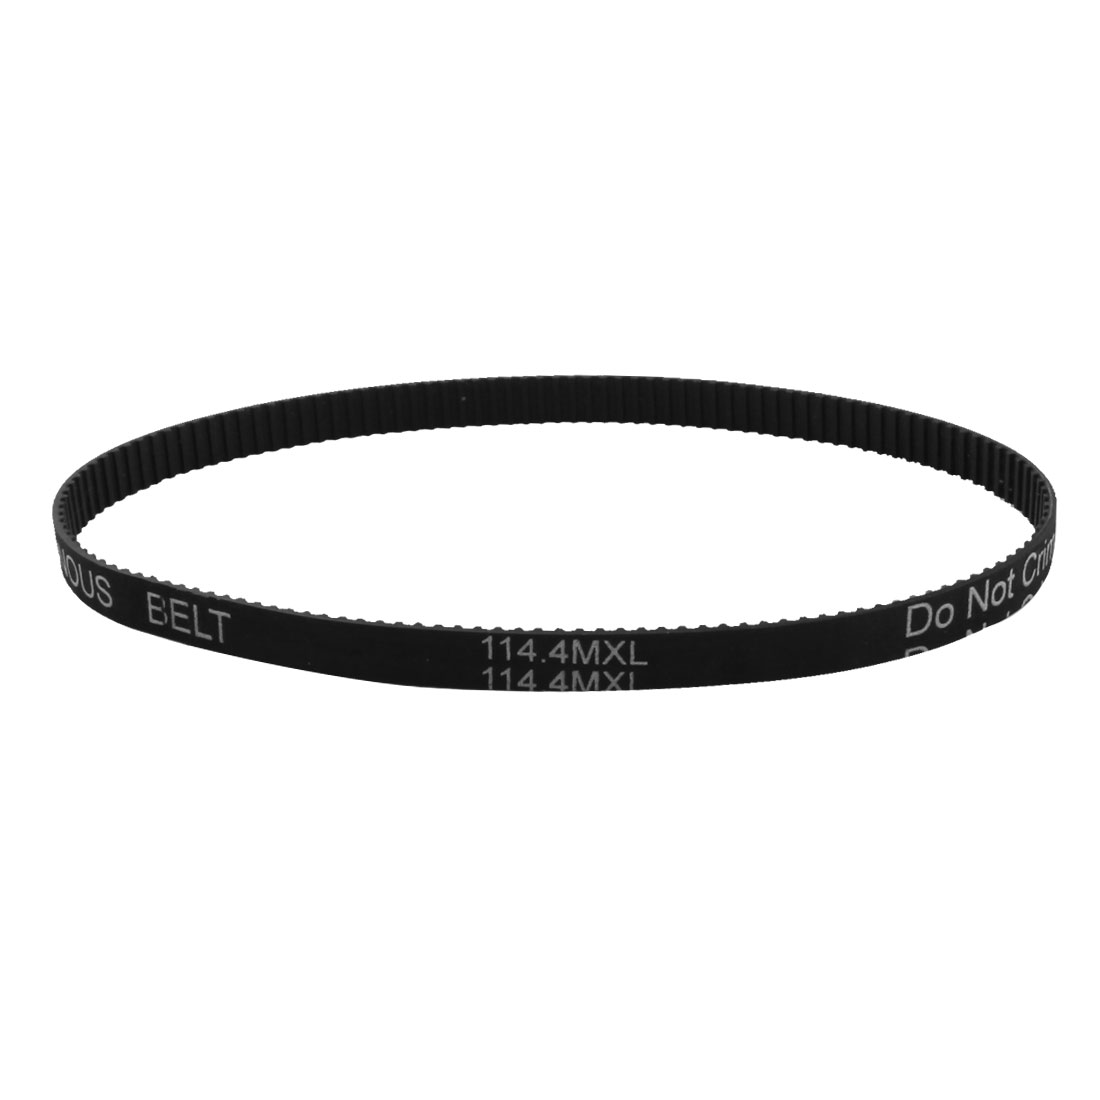 "114.4MXL025 143-Teeth 2.032mm Pitch 1/4"" Width Single Side Black Cogged Stepper Motor Synchronous Timing Belt 11.44"" Girth"